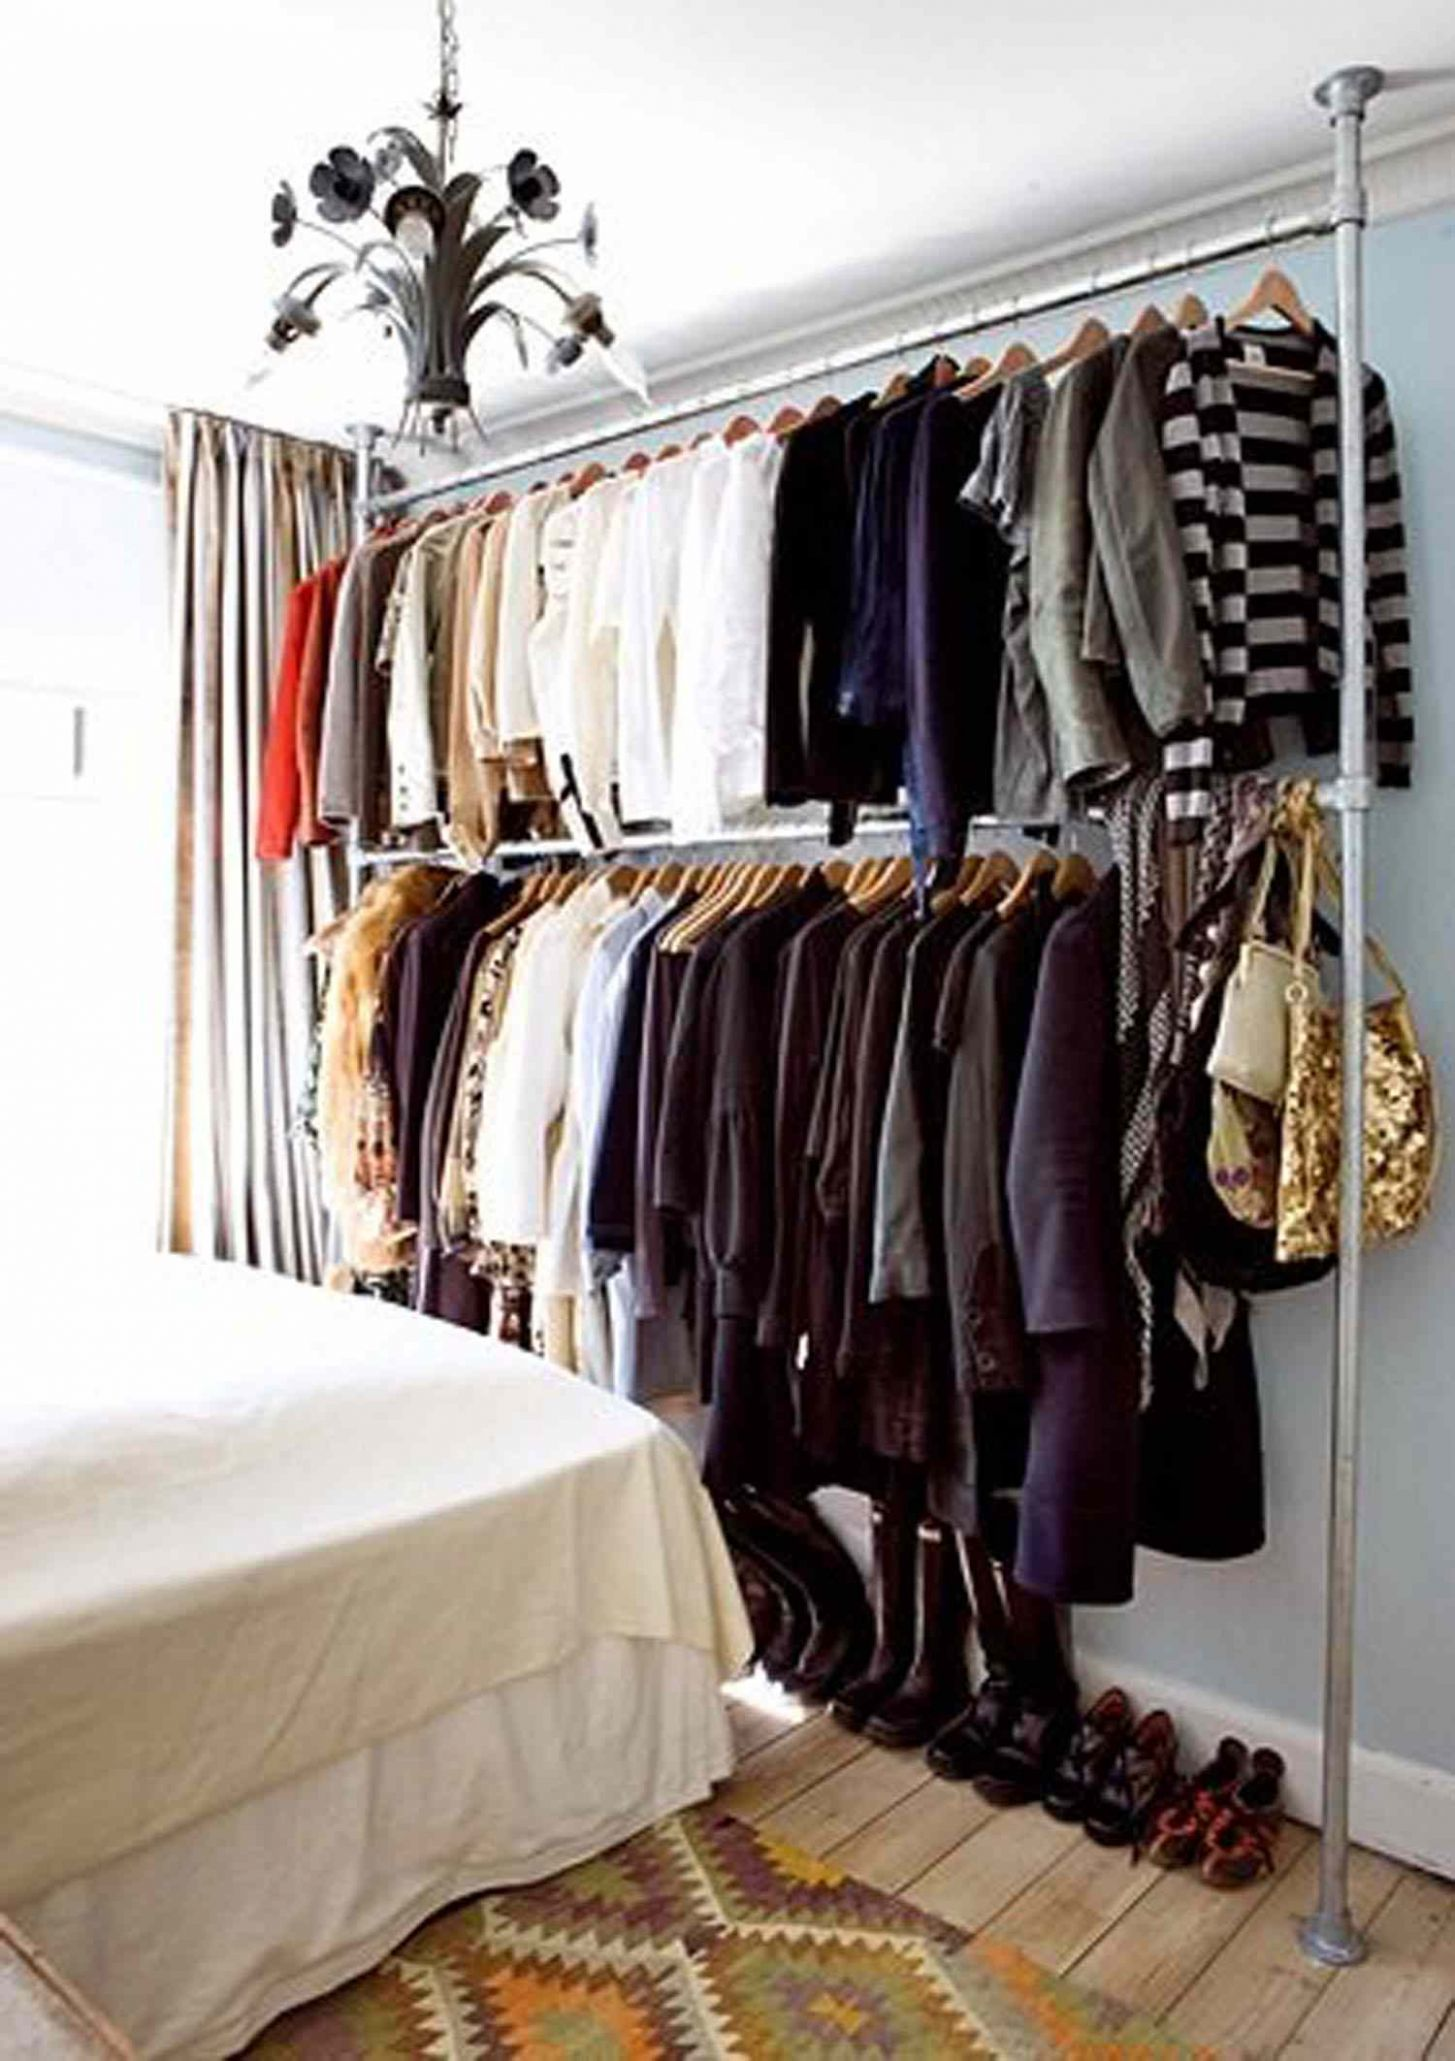 How to Store Clothes When You Don't Have a Closet